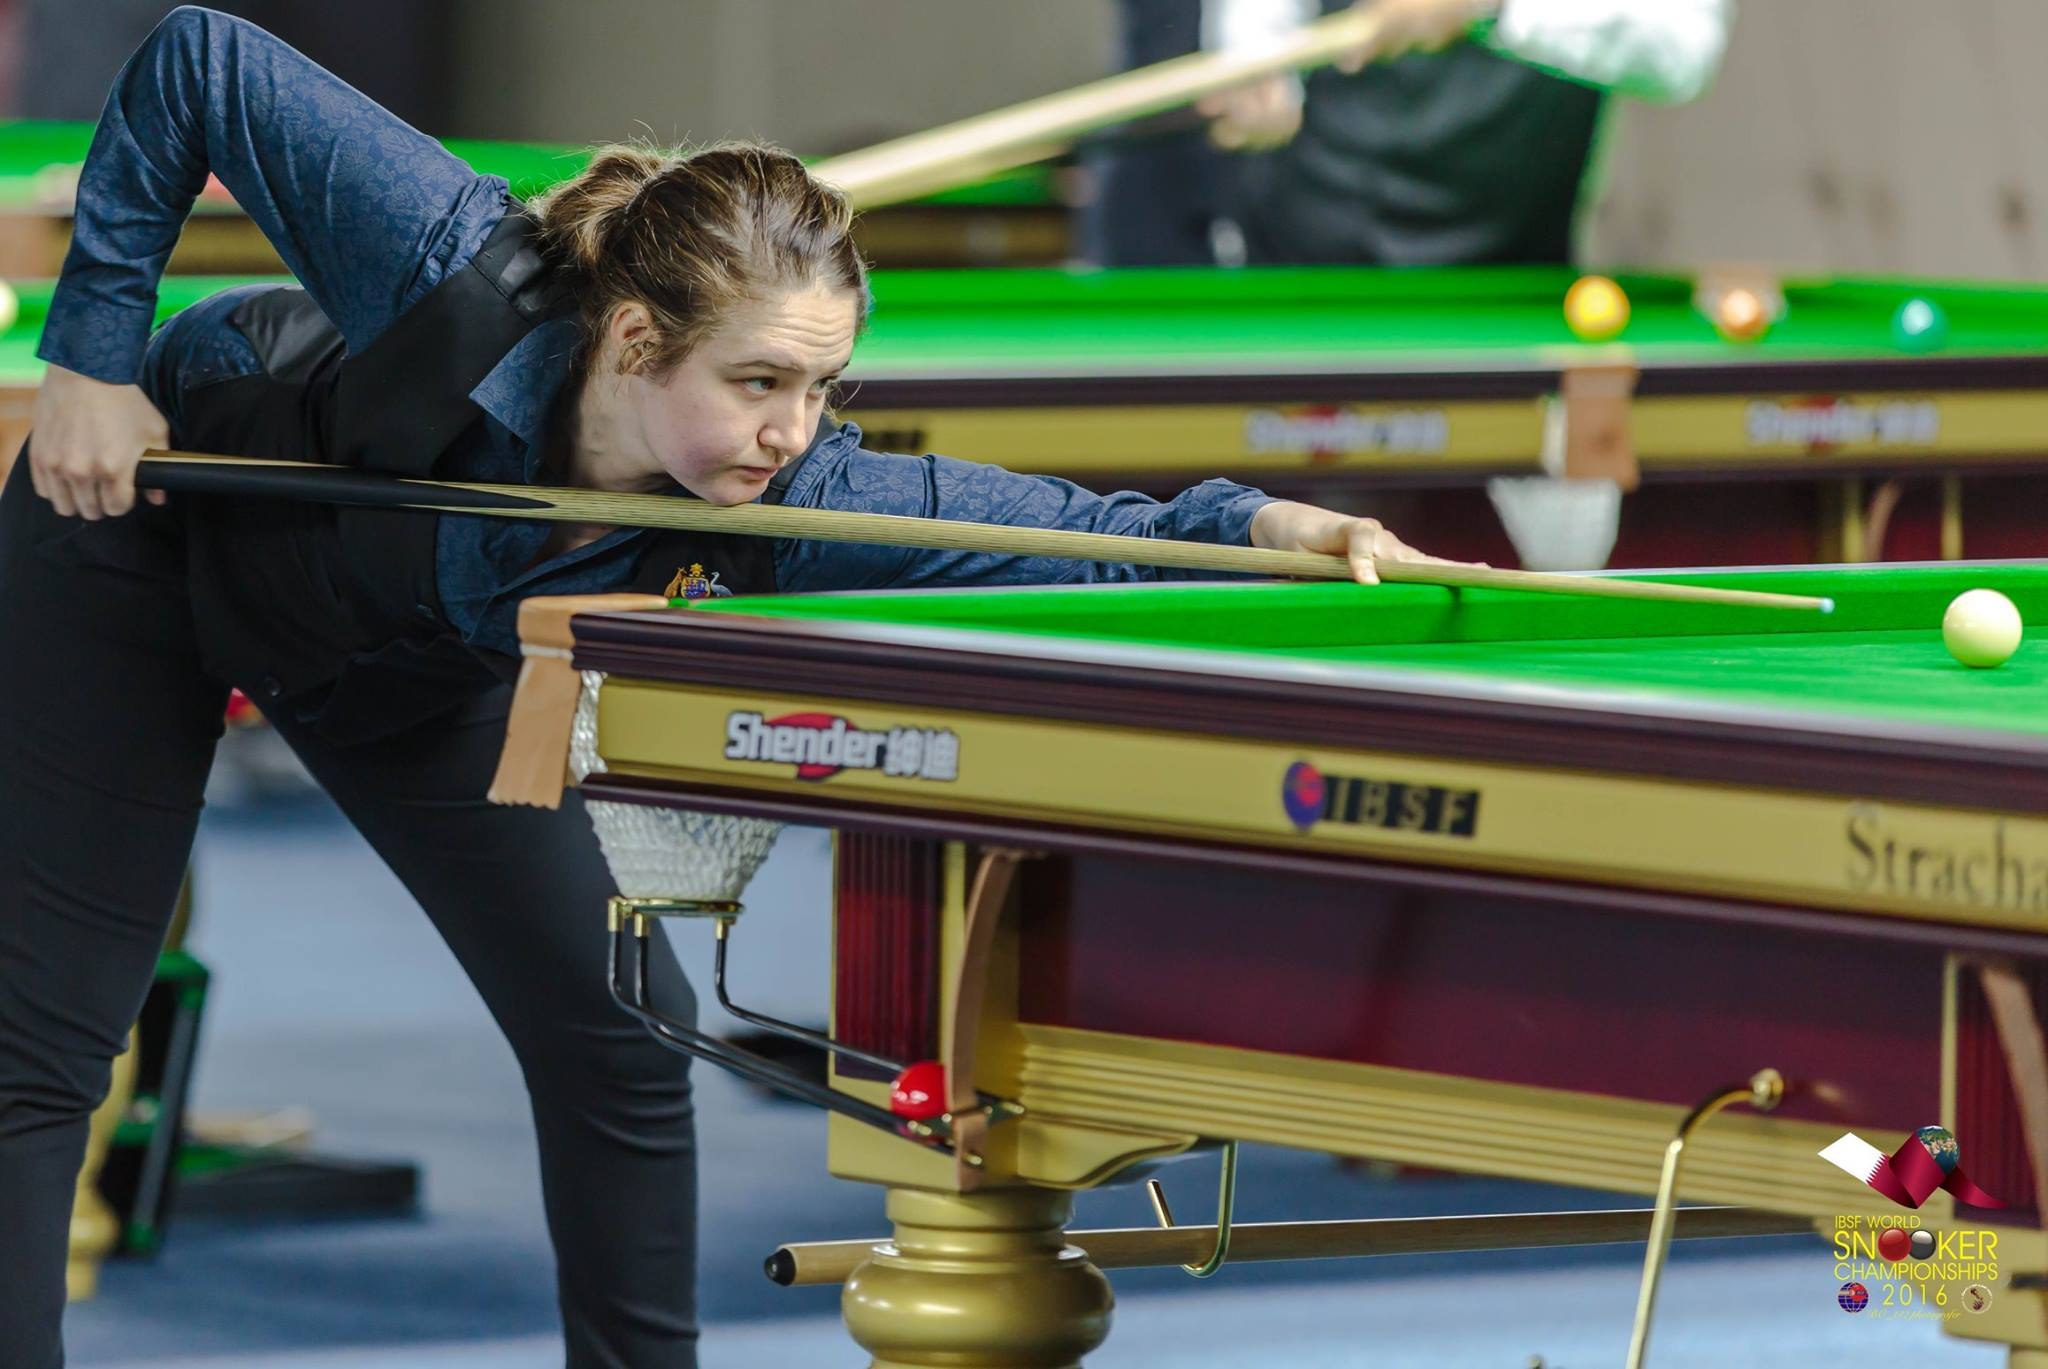 Top ladies snooker champion jessica woods at the Ibsf world snooker